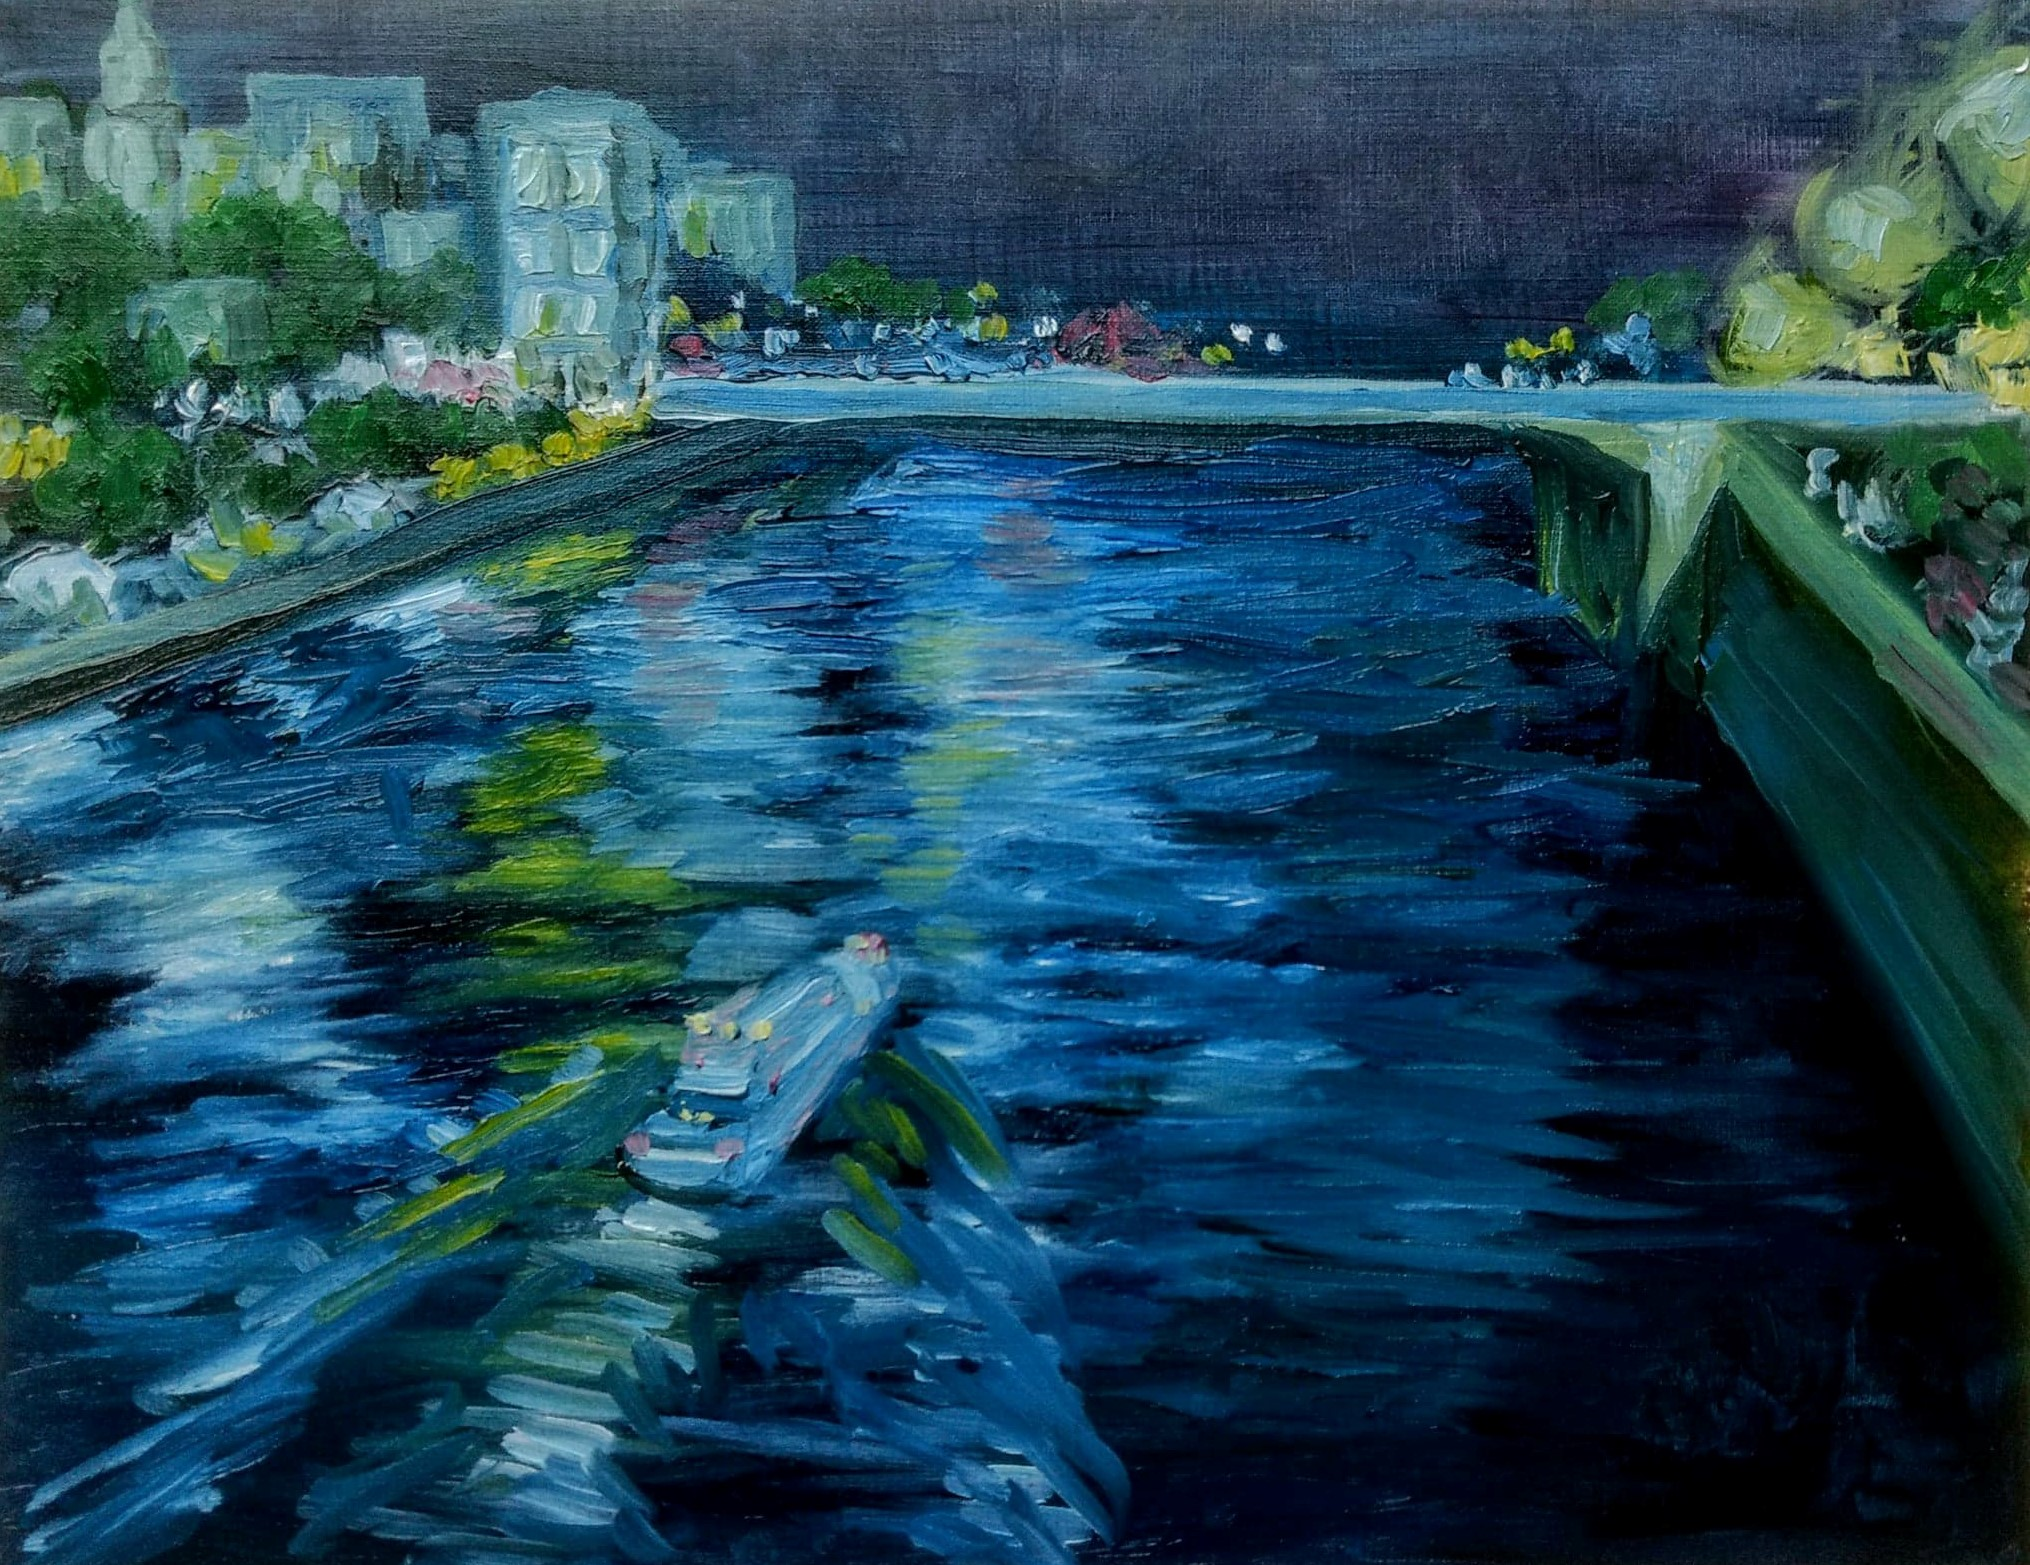 Seine at Night   2017  9 in x 12 in  Oil on Paper